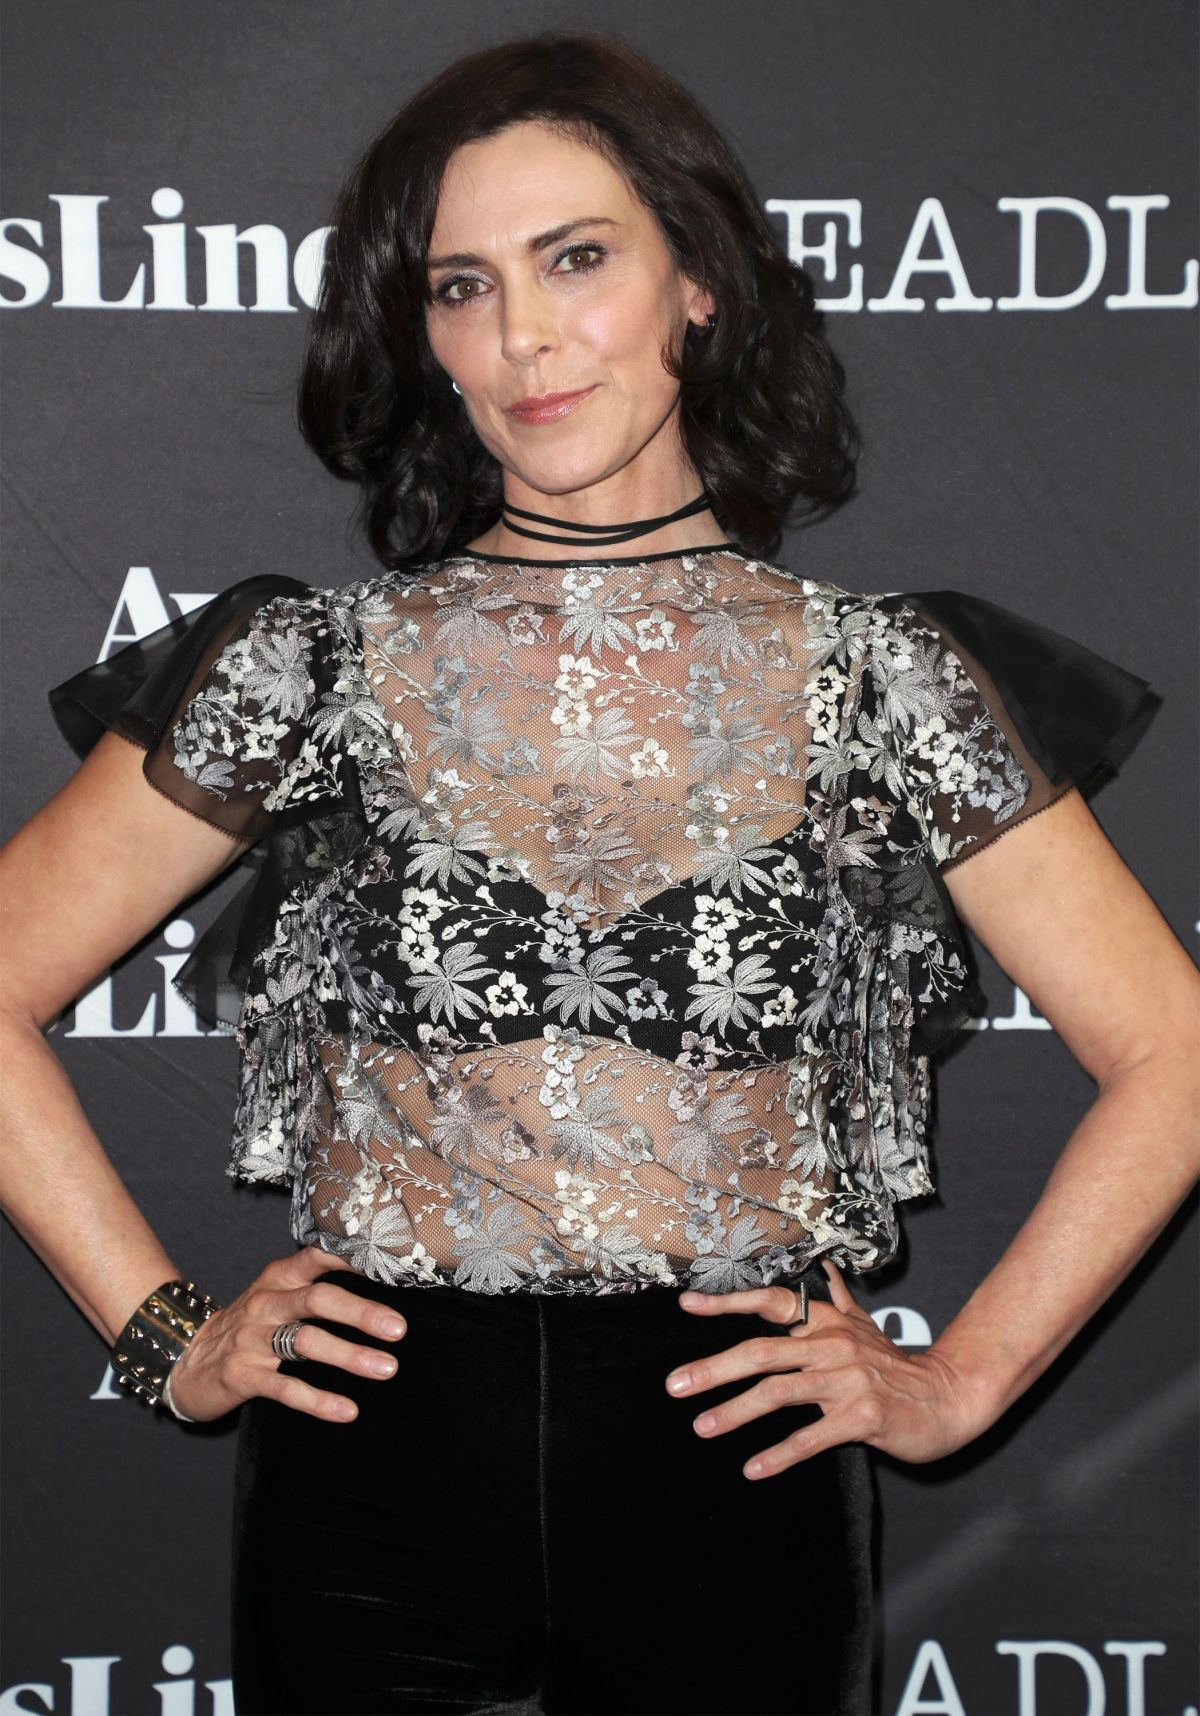 MICHELLE FORBES at Contenders Emmys Presented by Deadline in Los Angeles 04/09/2017